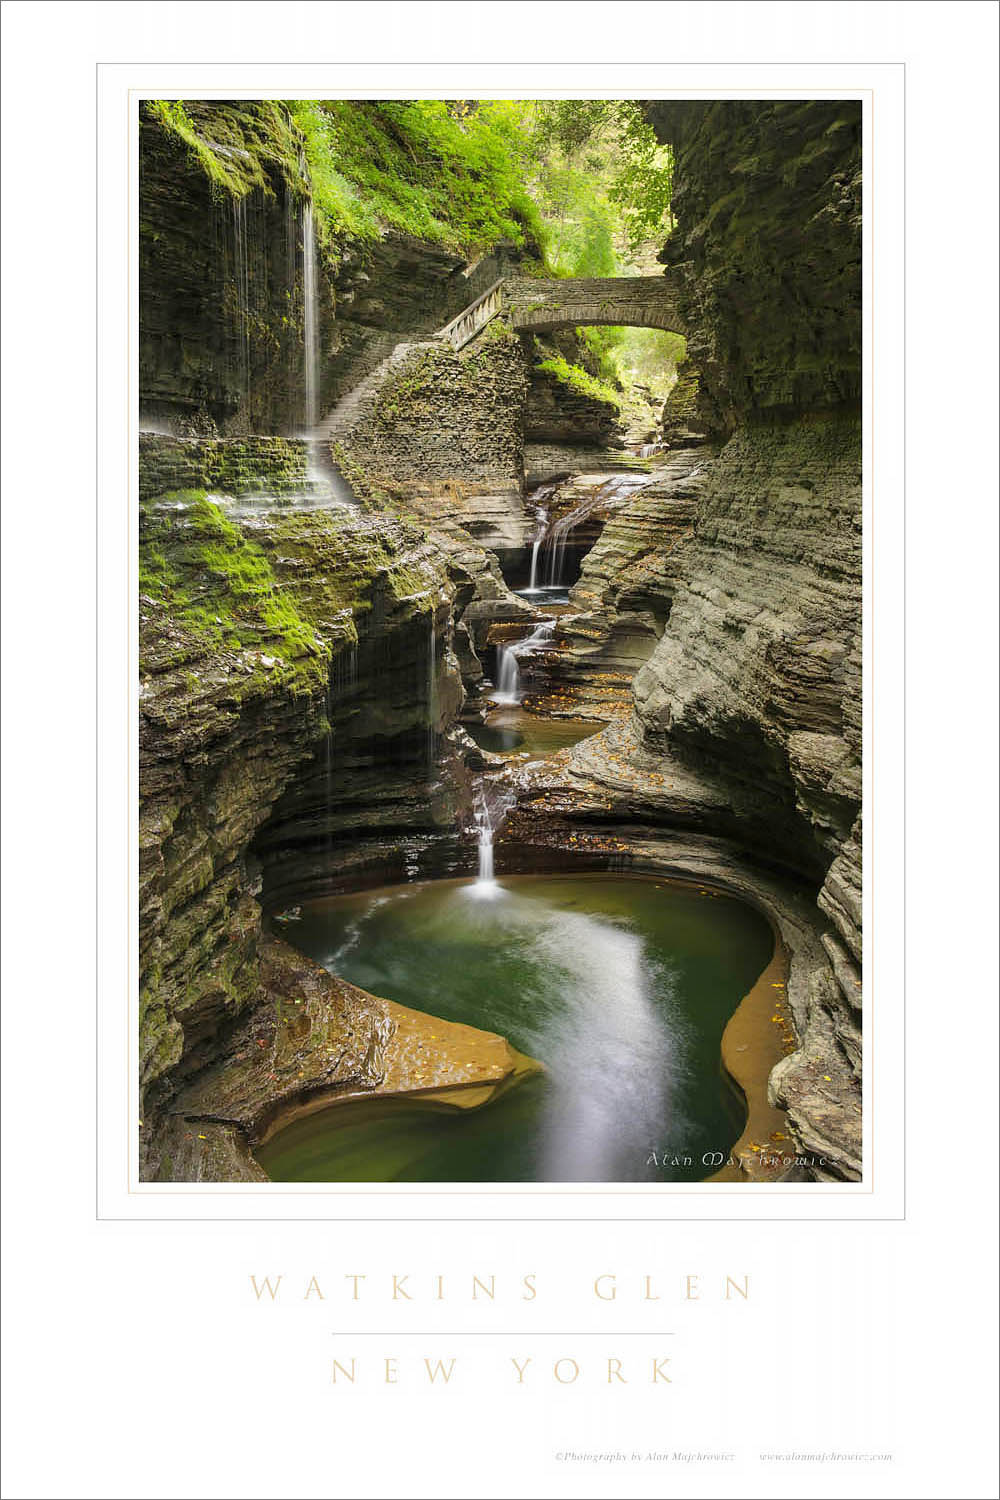 Watkins Glen New York